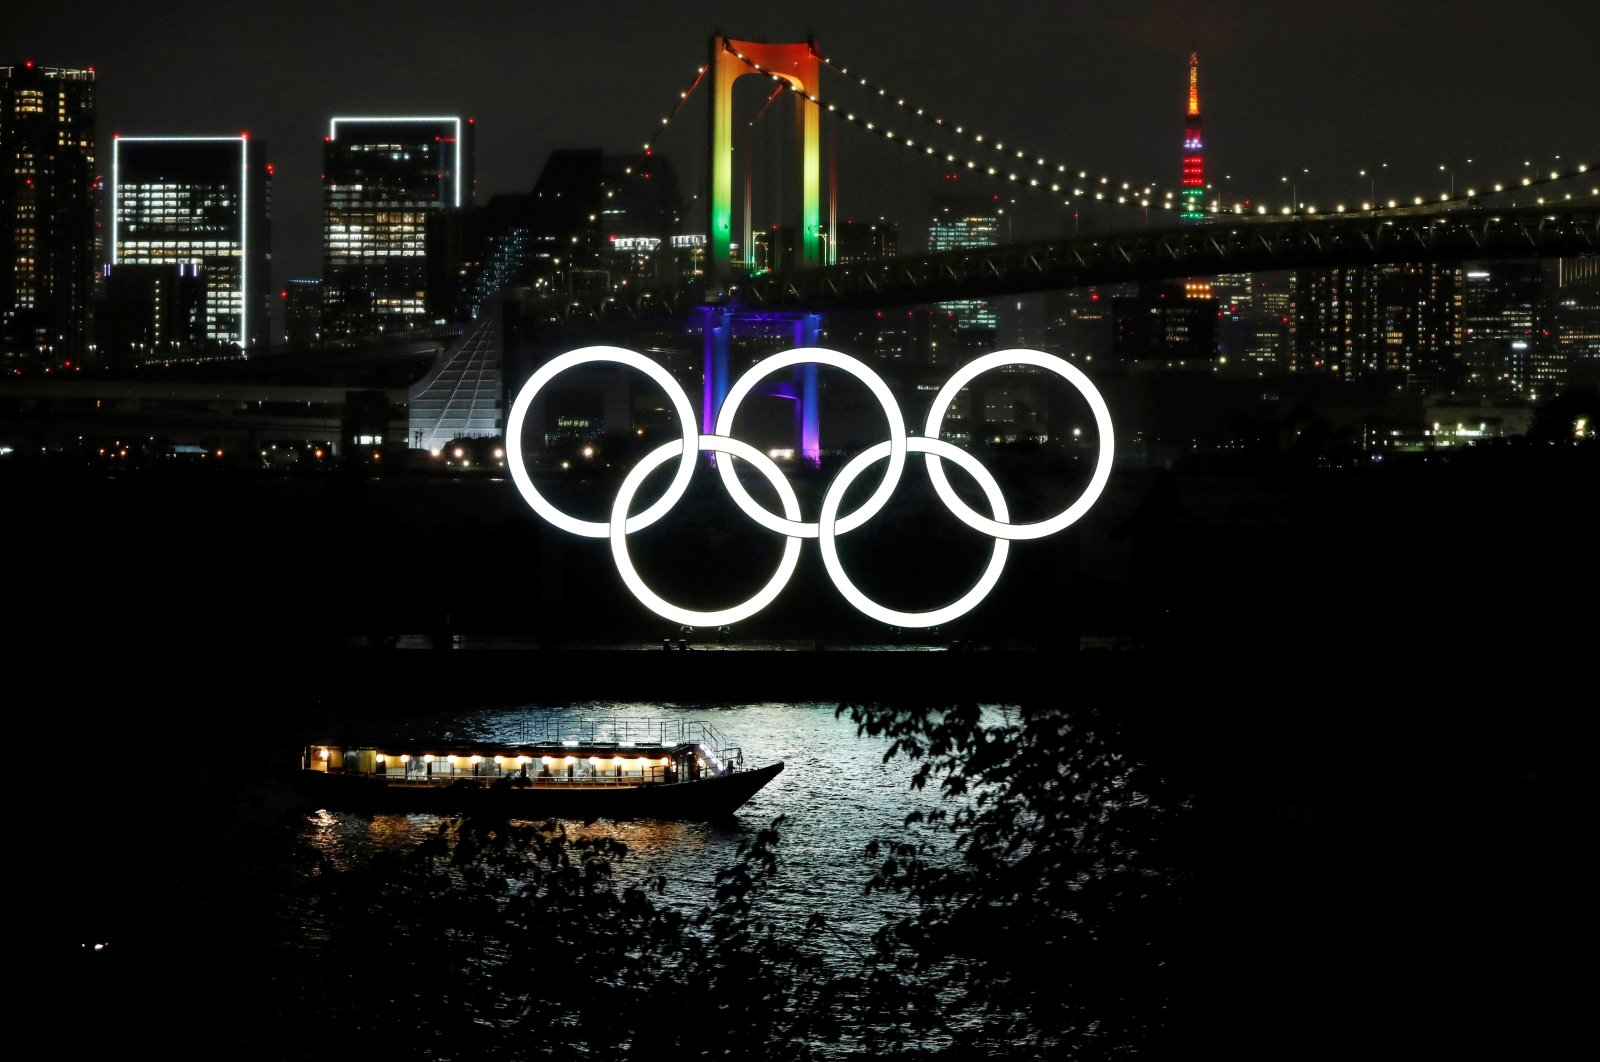 The Rainbow Bridge and Tokyo Tower are illuminated with Olympic colors to mark 100 days countdown to the Tokyo 2020 Olympics that have been postponed to 2021 due to the coronavirus disease (COVID-19) outbreak, in Tokyo, Japan April 14, 2021. (Reuters Photo)